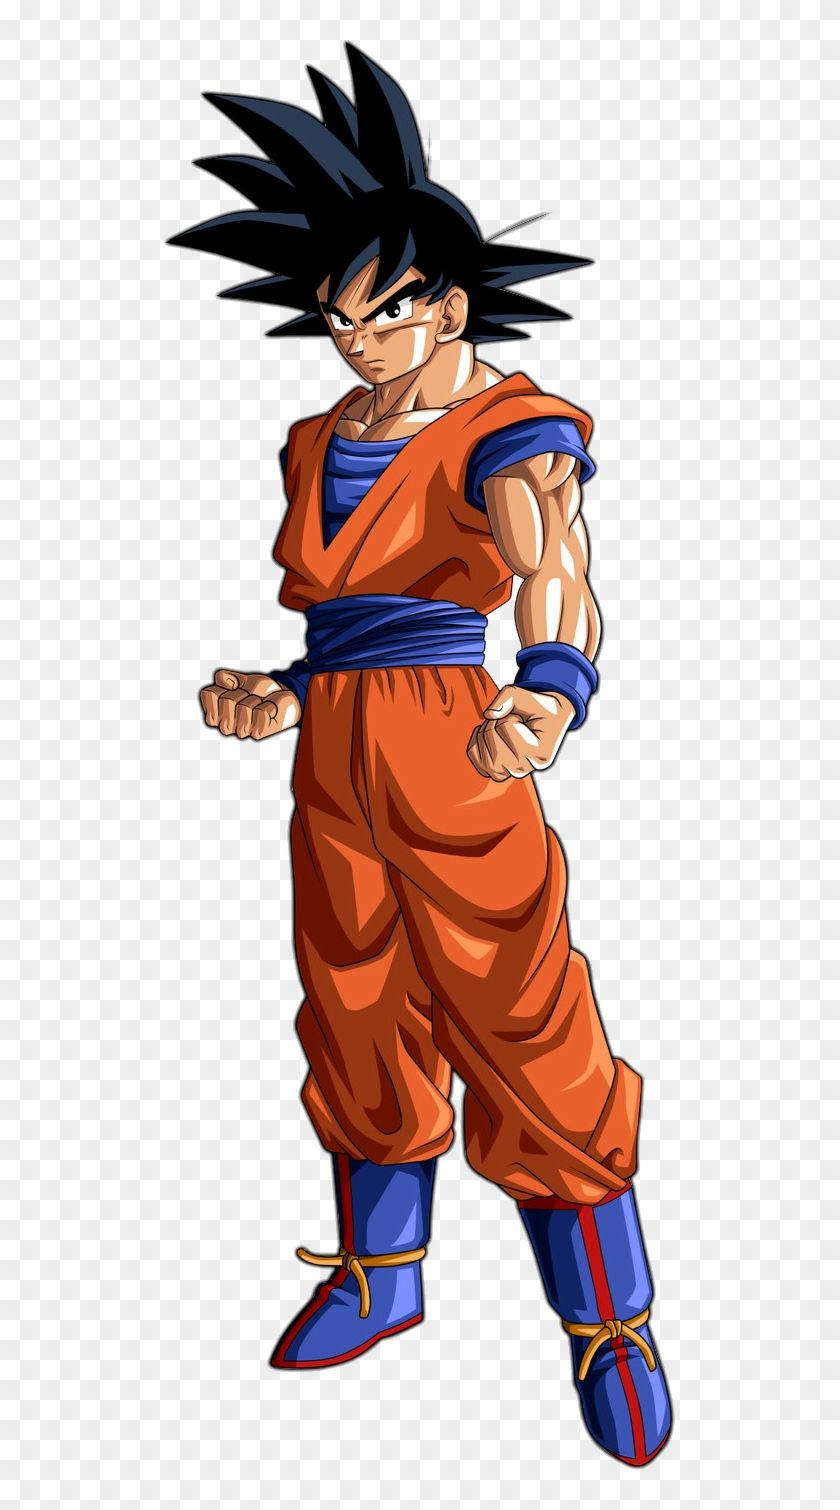 Find Hd Goku Png Dragon Ball Vegeta Hd Transparent Png To Search And Download More Free Transparent Png Images Goku Dragon Ball Dragon Ball Super